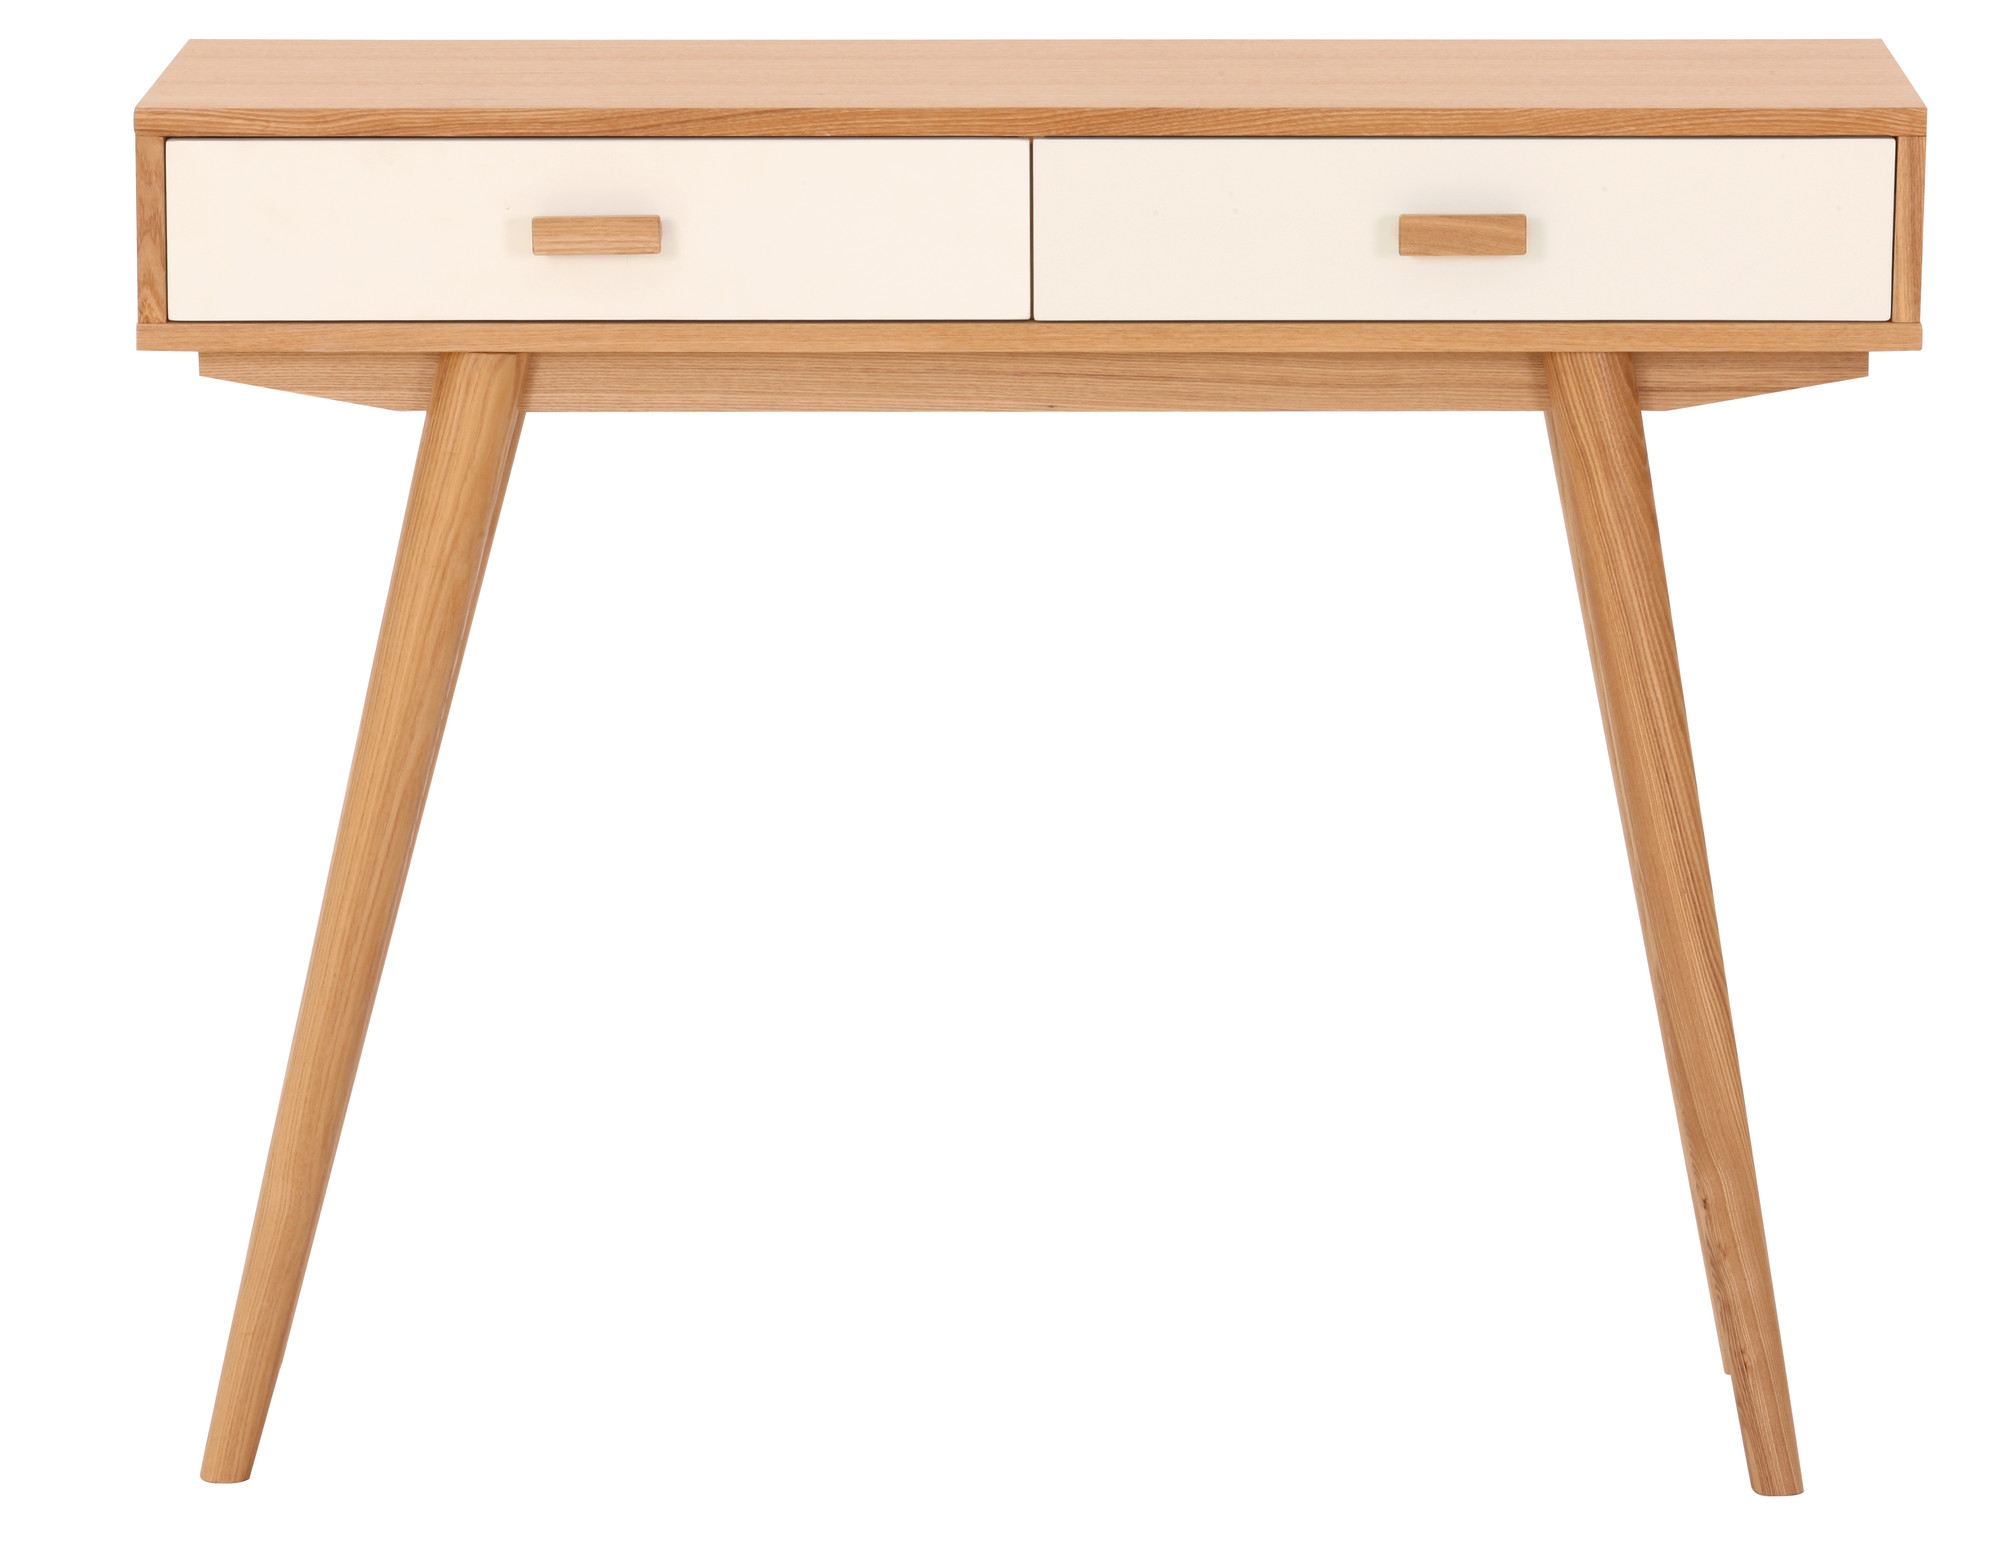 Marri Dining Table Perth Images Hardwood